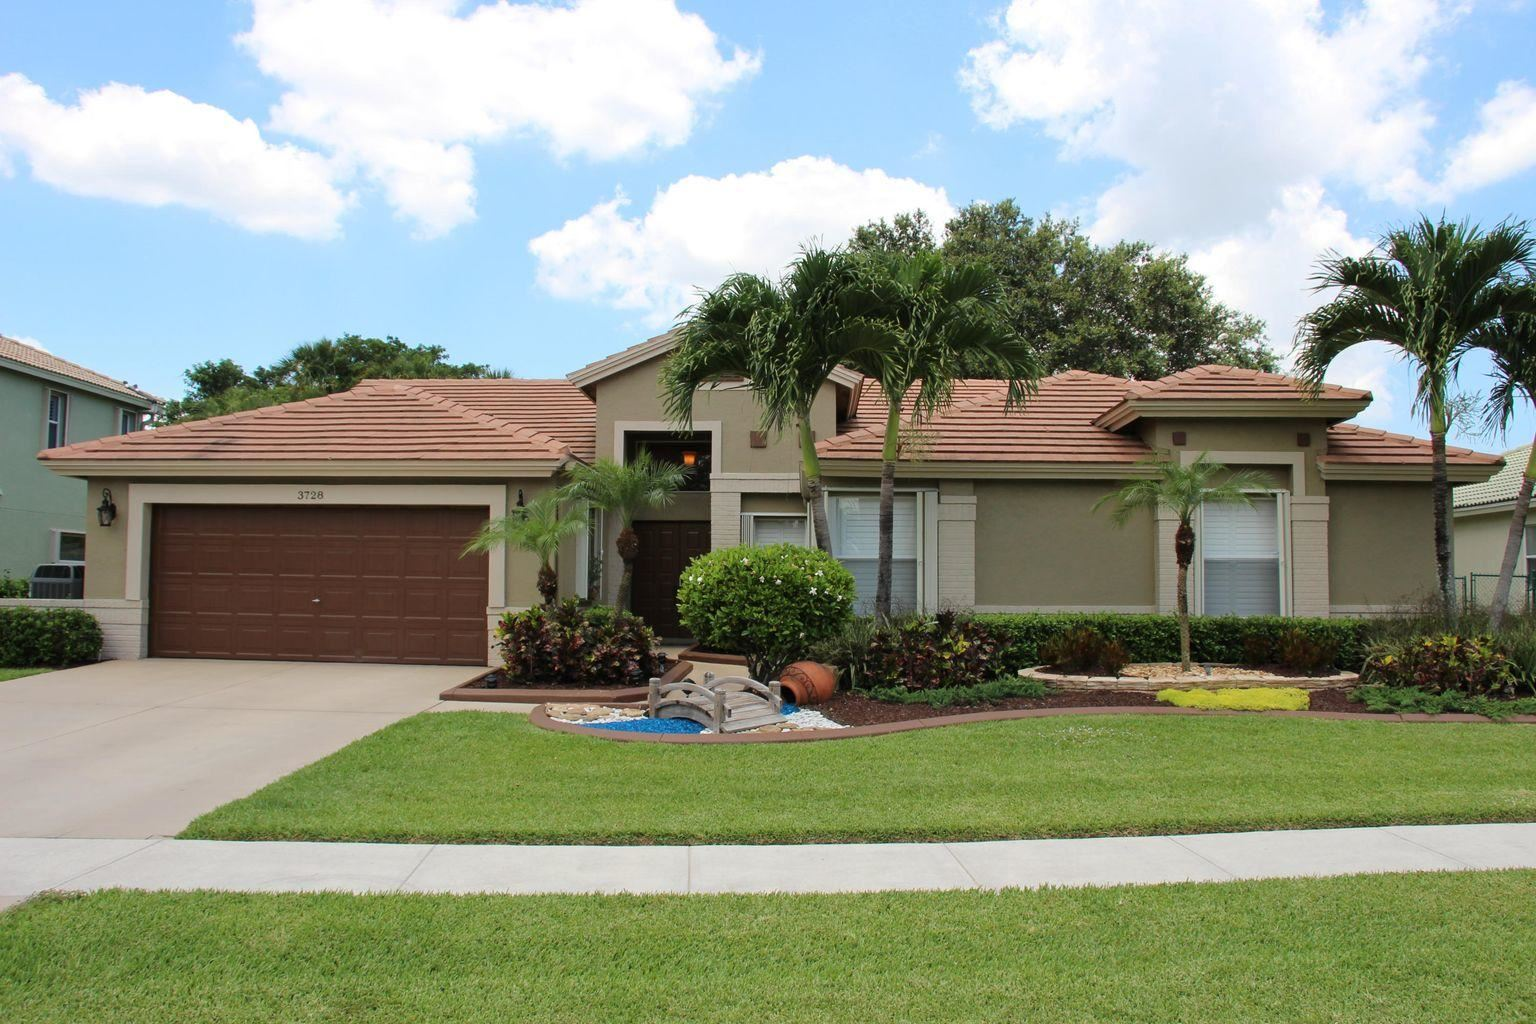 Photo of 3728 Cypress Lake Drive, Lake Worth, FL 33467 (MLS # RX-10715353)